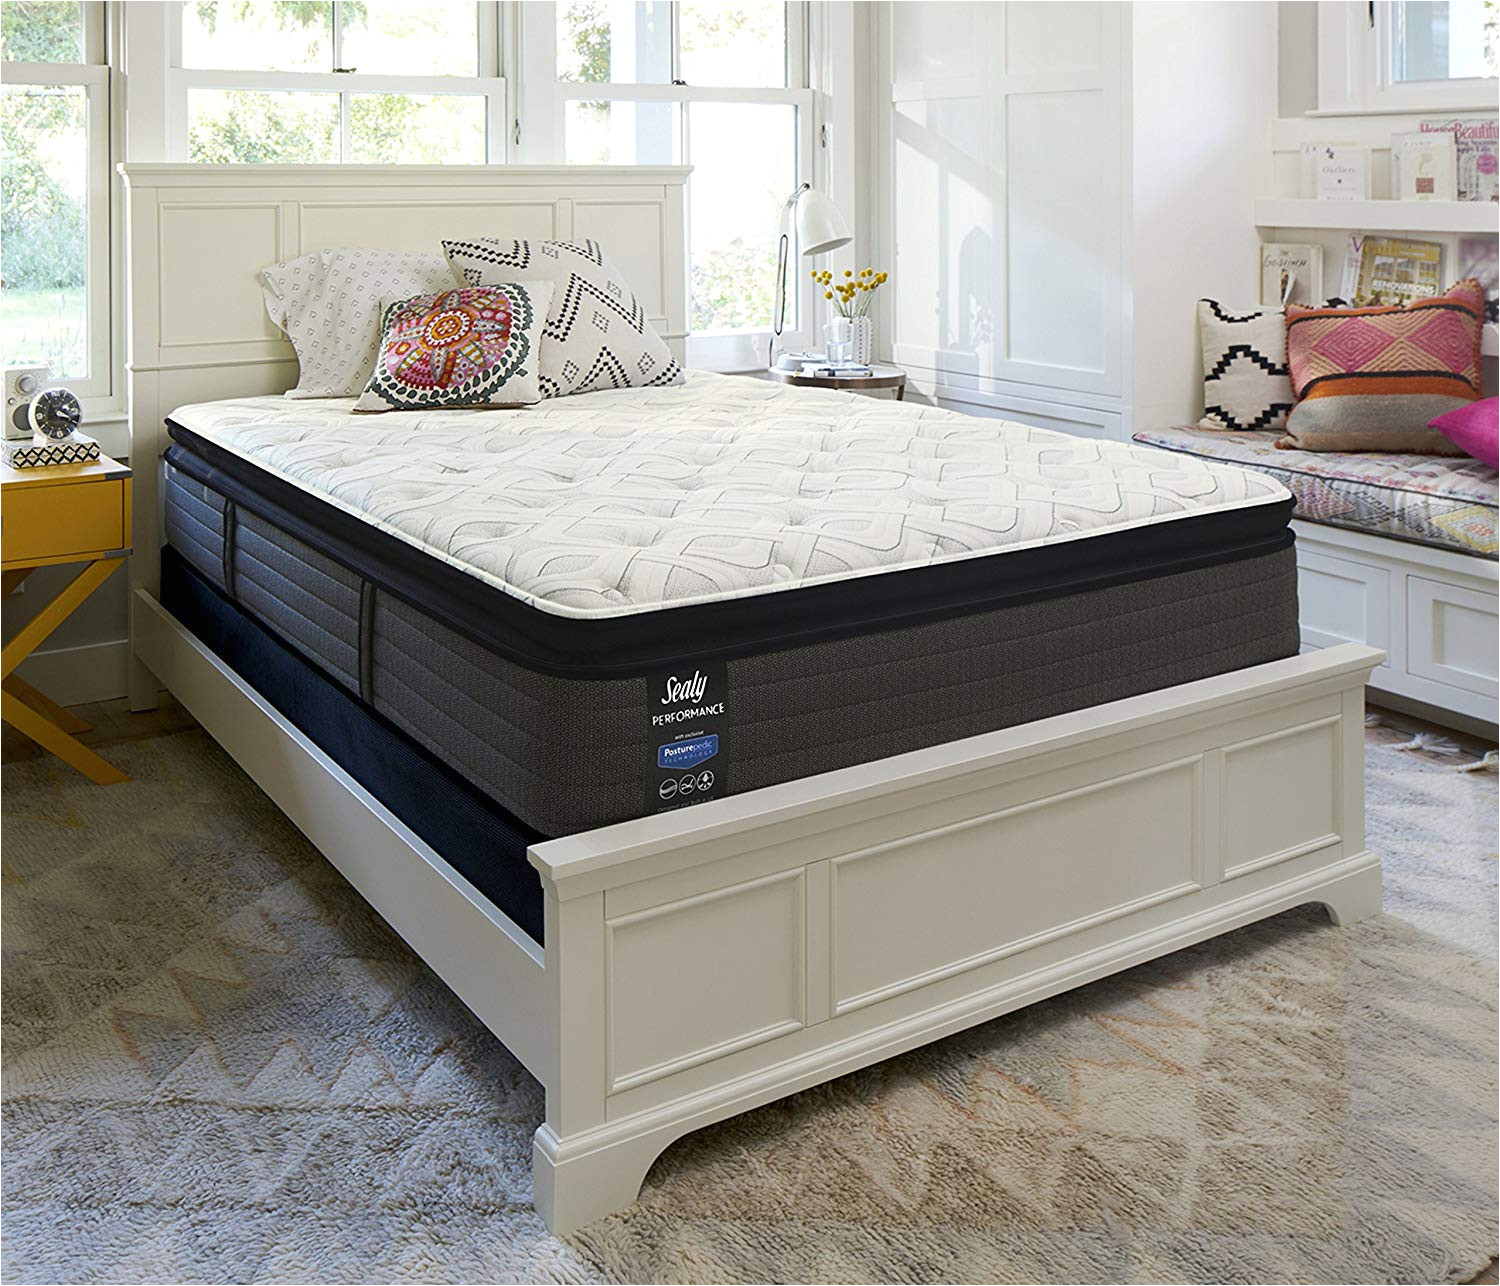 amazon com sealy response performance 14 inch cushion firm euro pillow top pro mattress california king made in usa 10 year warranty kitchen dining